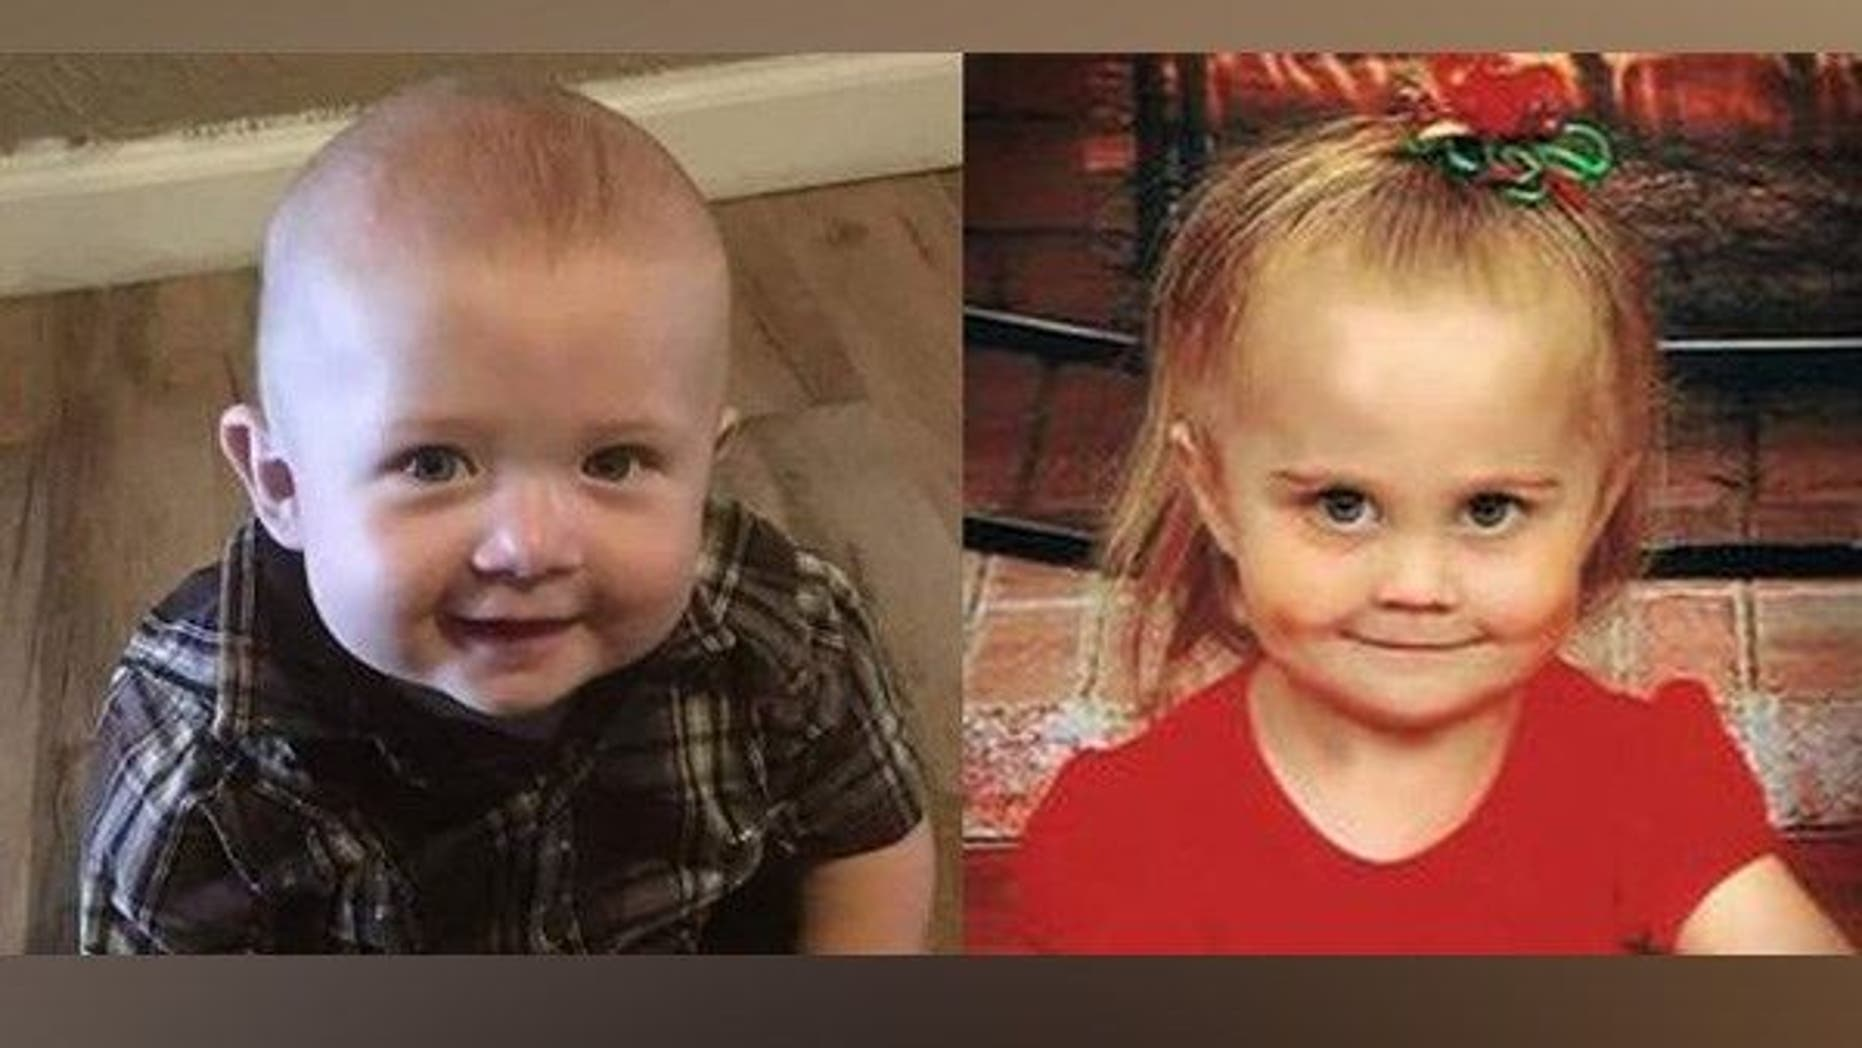 An older sibling was being held in connection with the deaths of Nathaniel Ritz, 11 months, and Desiree McCartney, 23 months, authorities say.